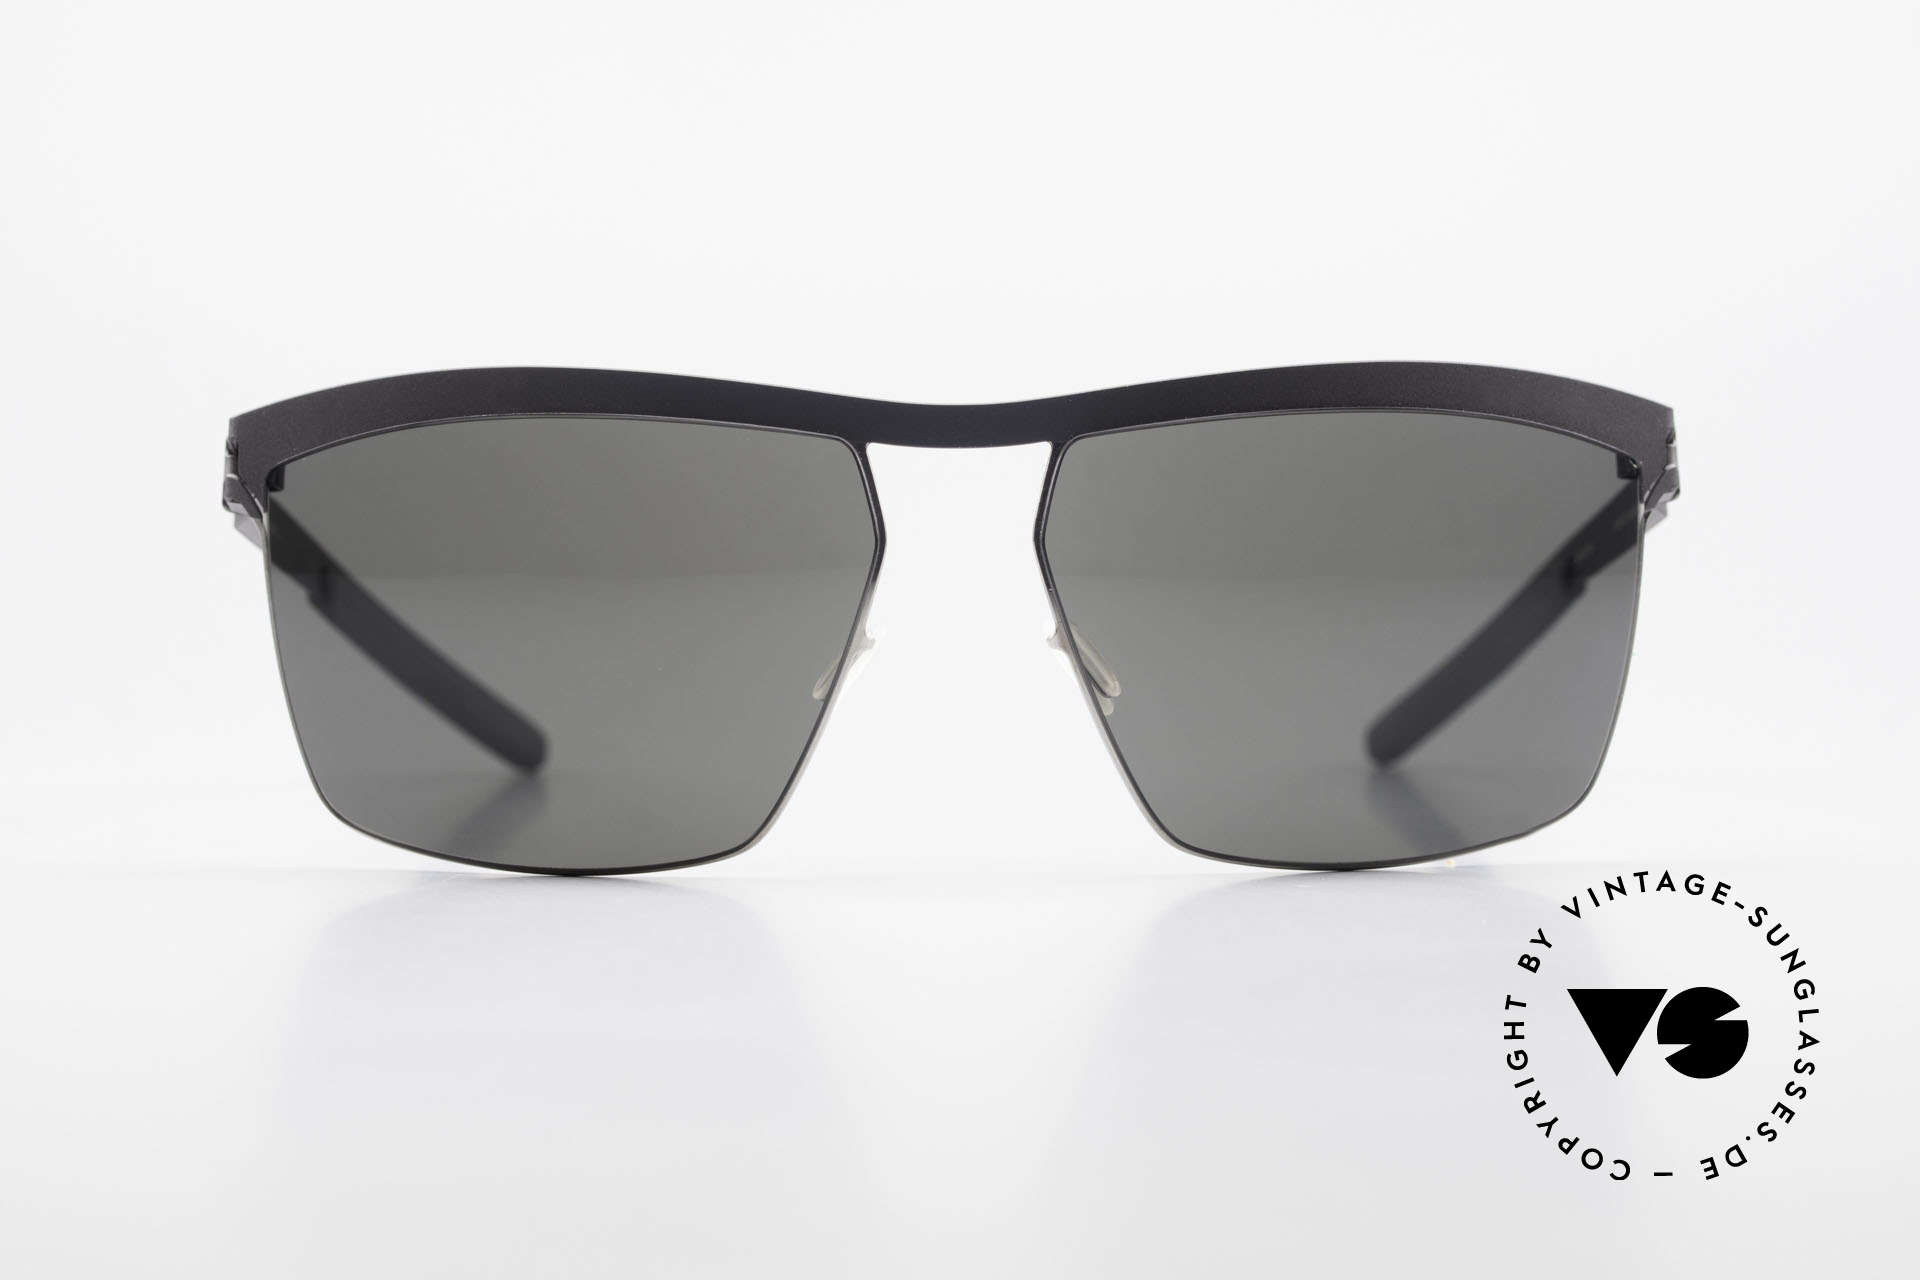 Mykita Tiago Designer Unisex Sunglasses, MYKITA: the youngest brand in our vintage collection, Made for Men and Women